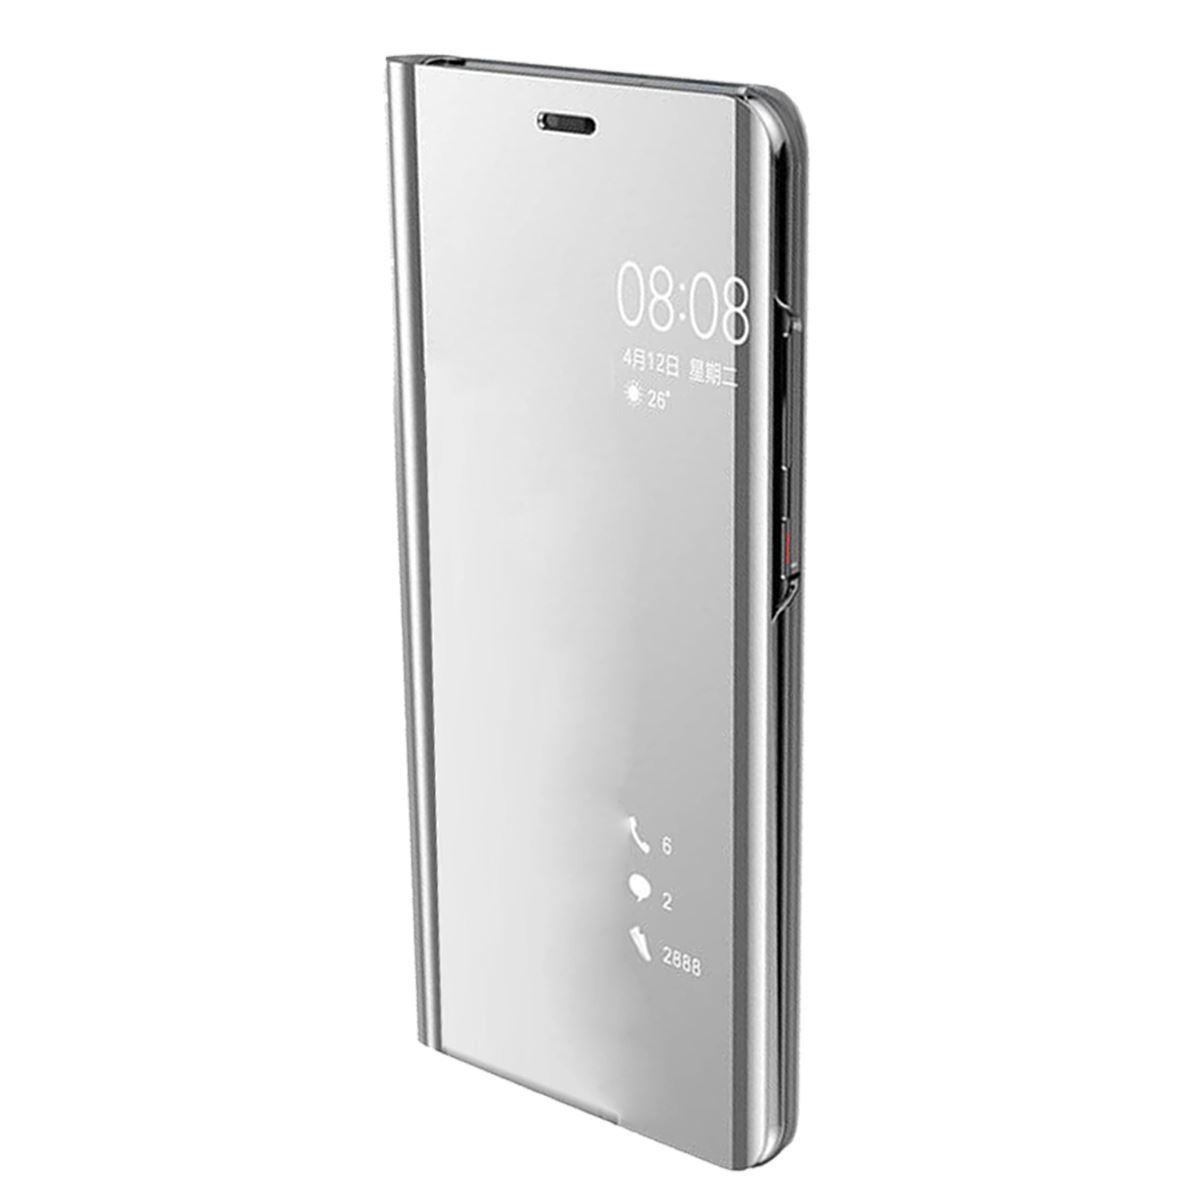 Huawei P10 Case Smart View Mirror Flip Stand Cover - Silver